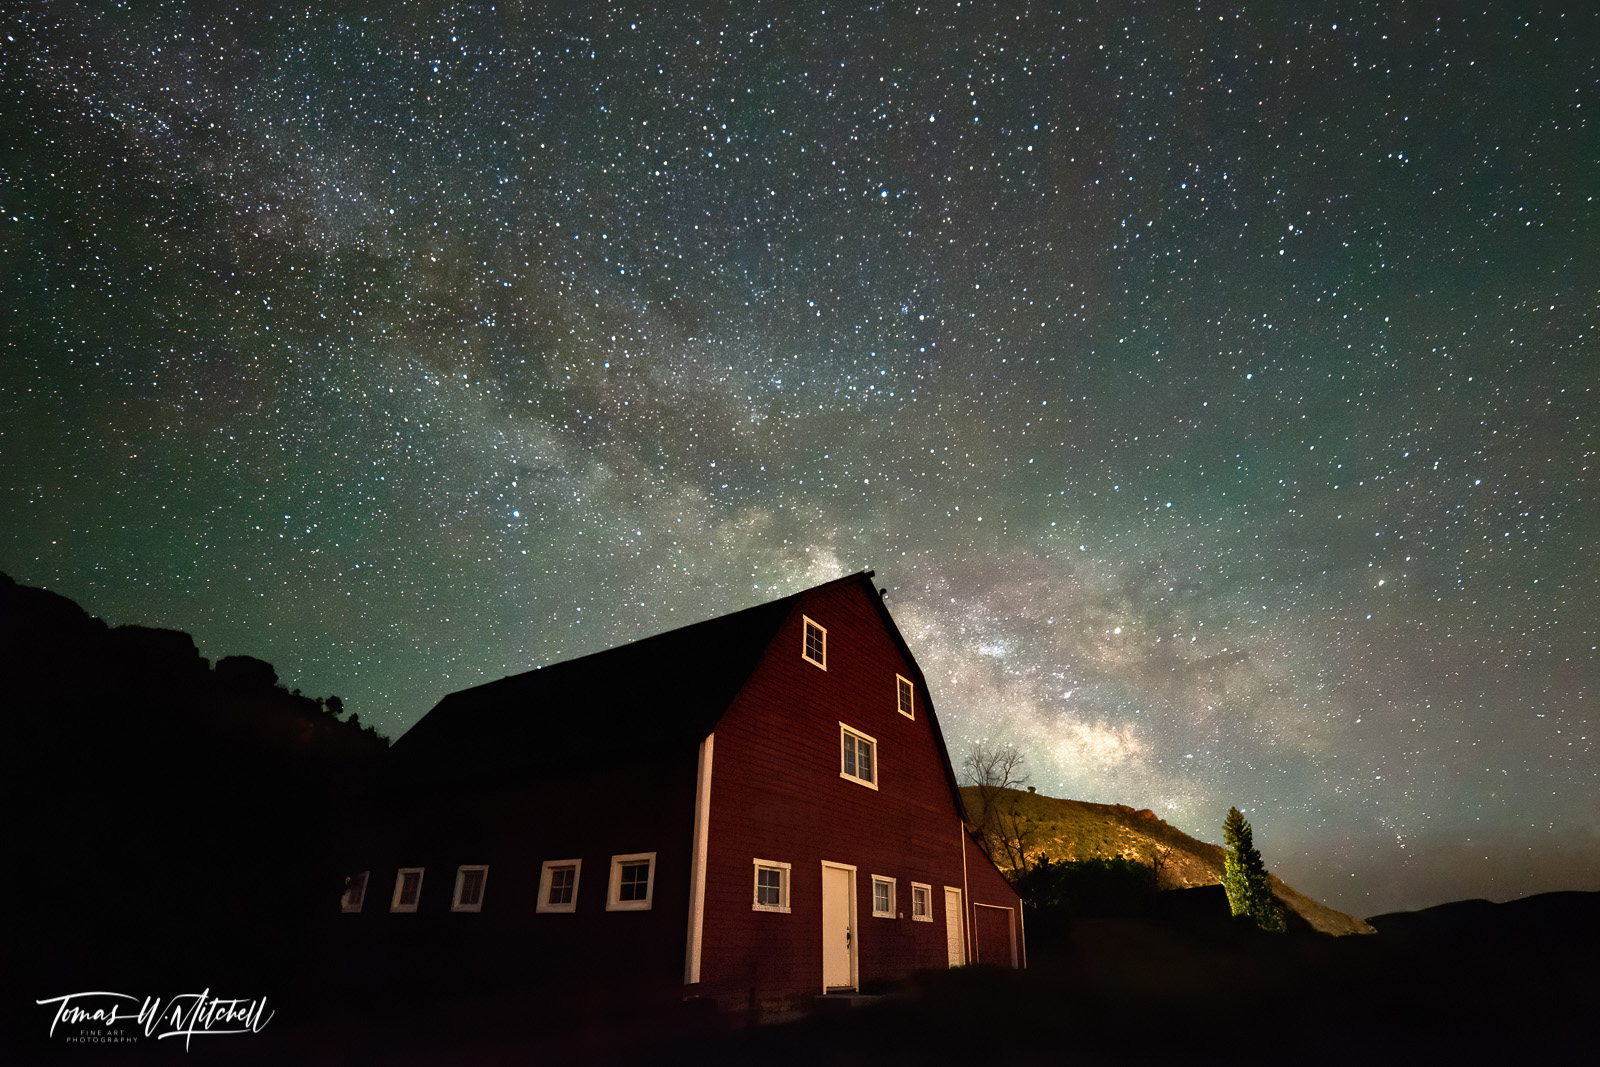 limited edition, fine art, prints, peoa utah, galactic barn, photograph, milky way, astronomy, summer, stars, photo